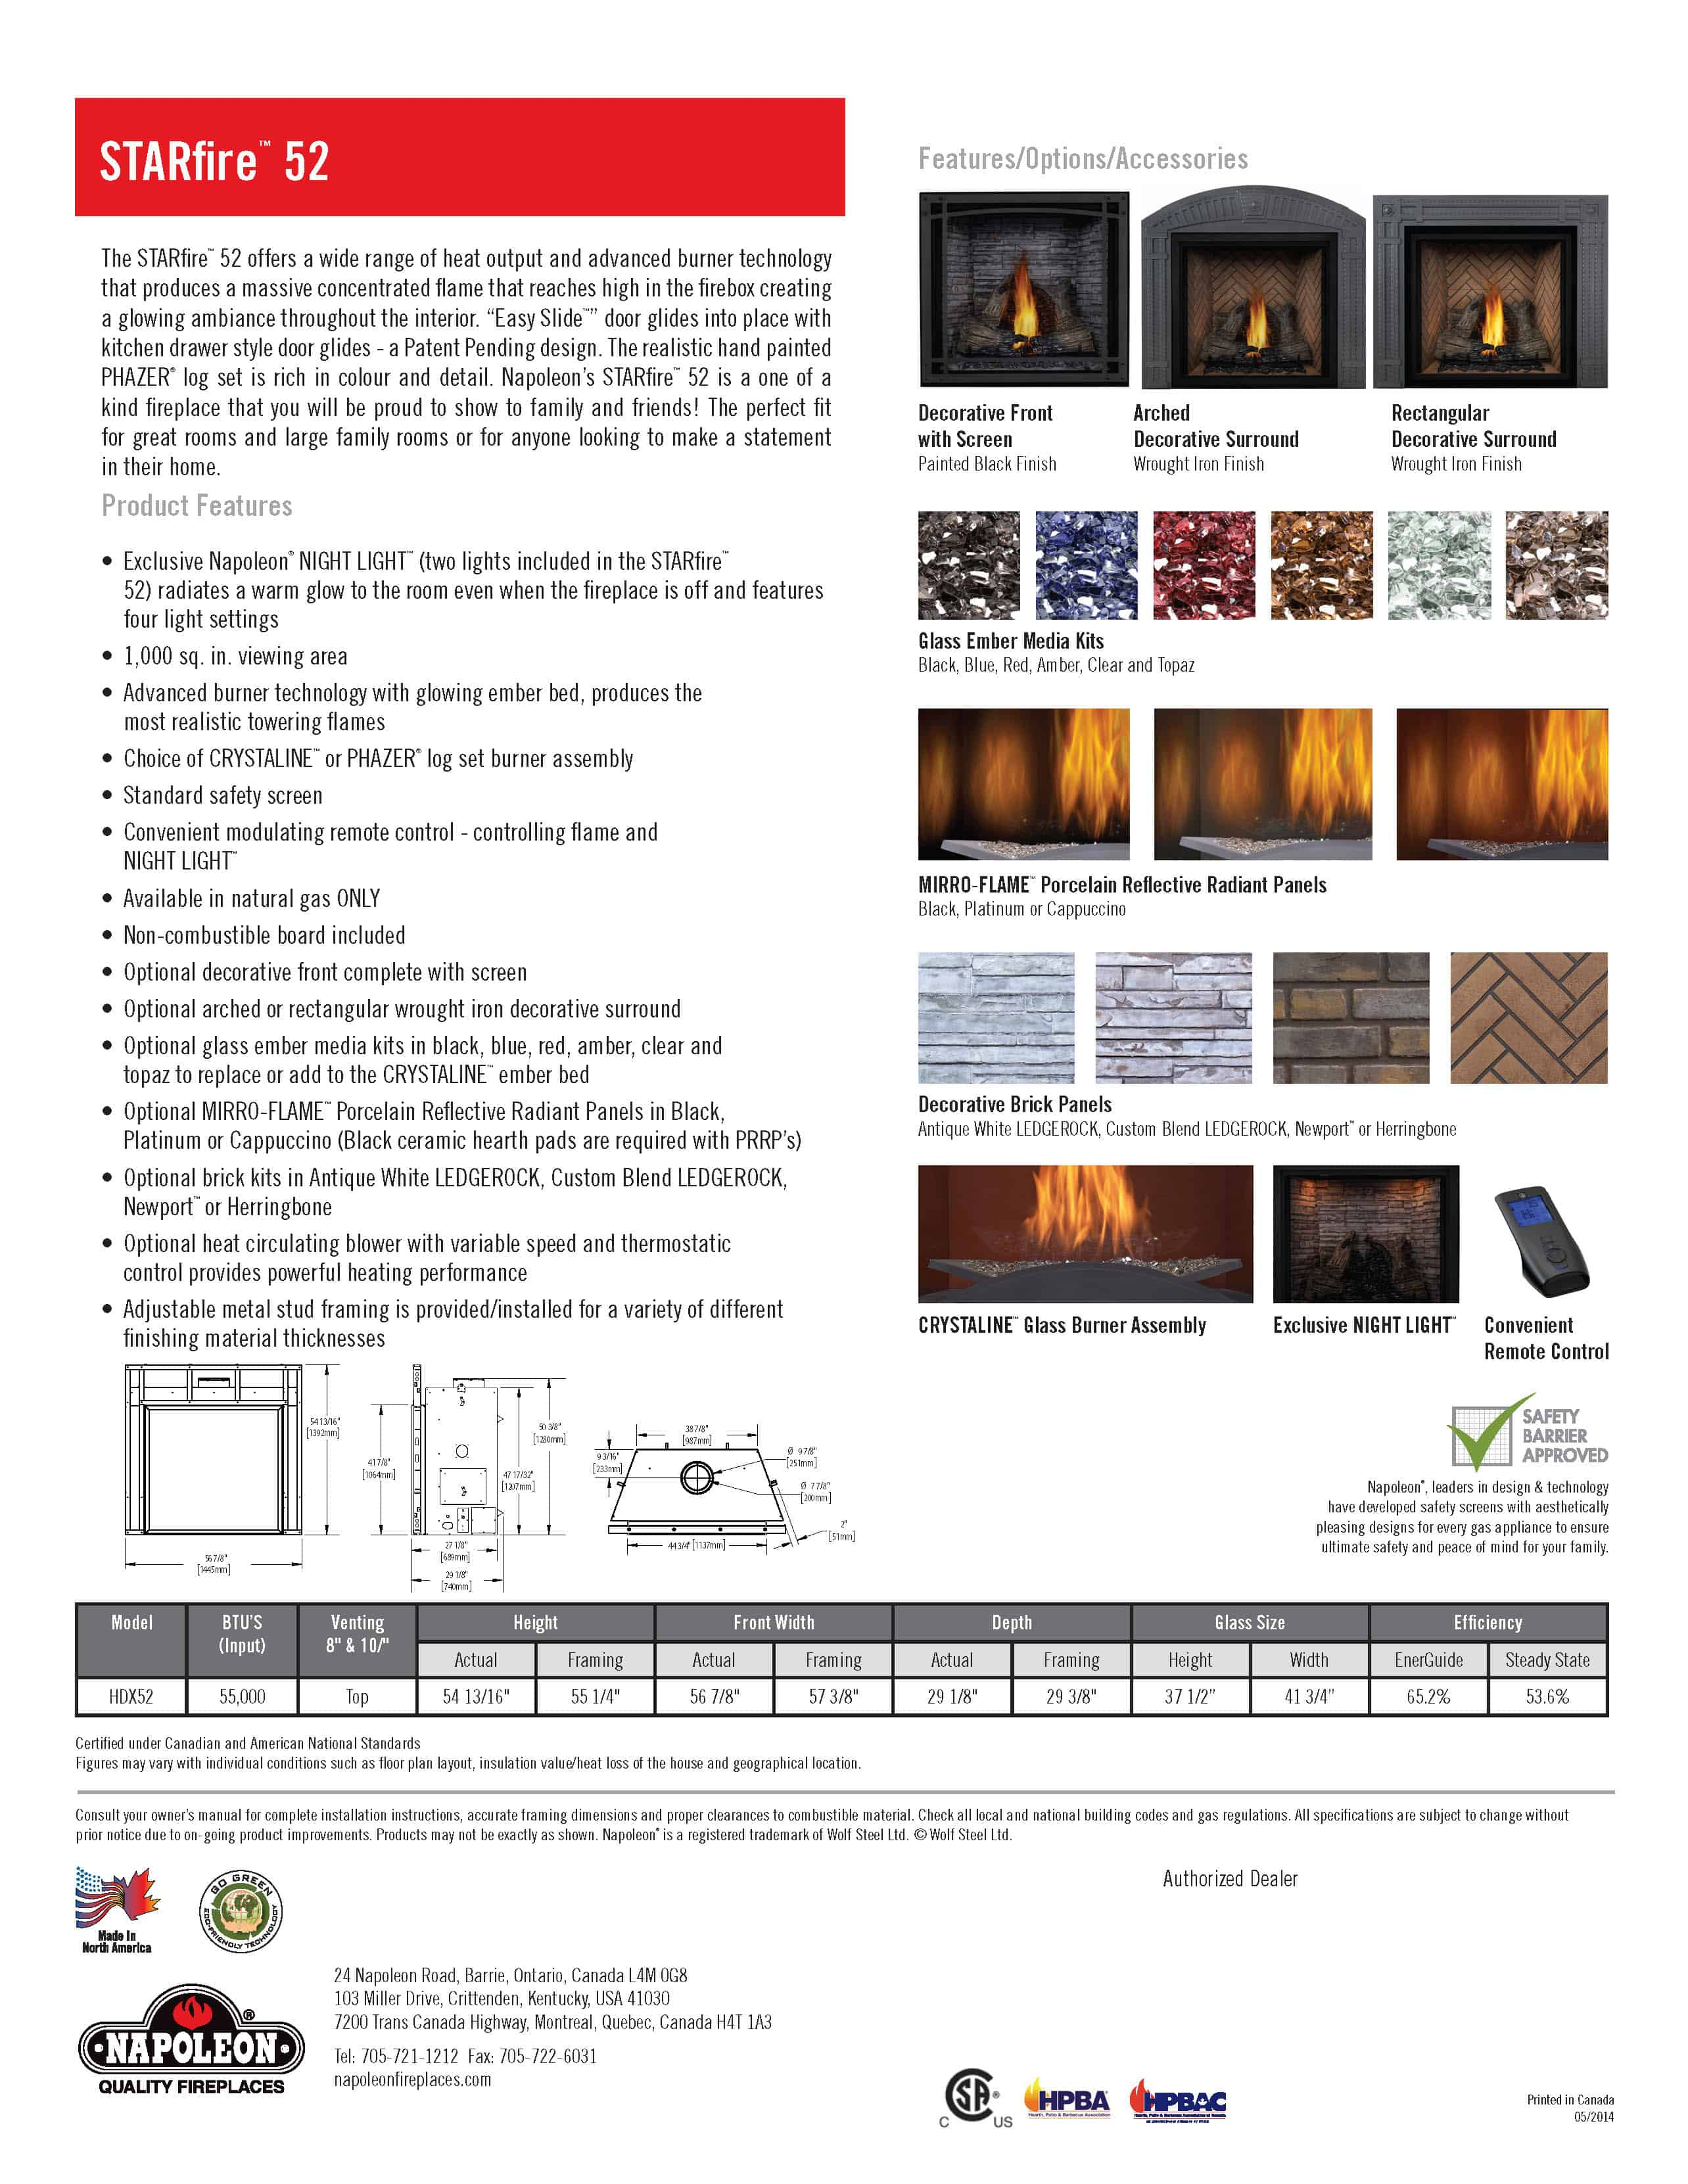 Biggest Gas Direct Vent Fireplace Starfire 52 By